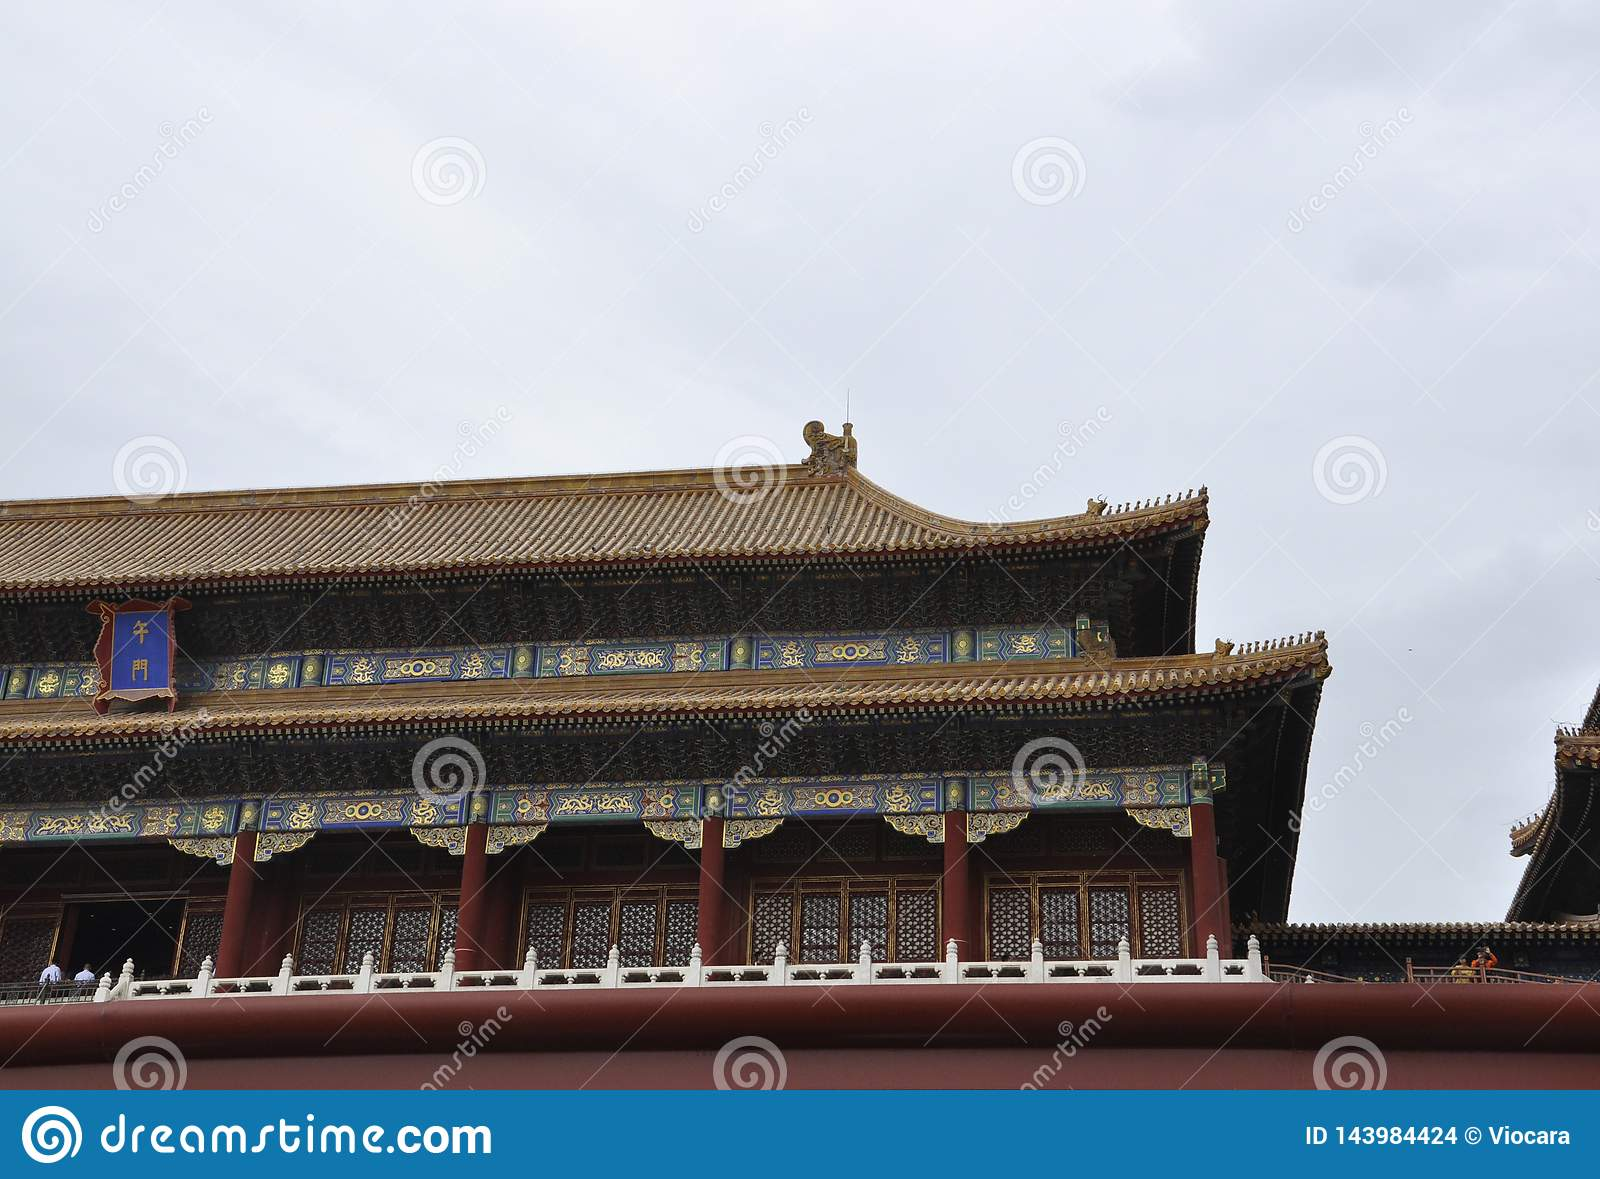 Wooden Roof Pagoda Of The Meridian Gate From The Palace Museum In Beijing Stock Photo Image Of Famous Chinese 143984424